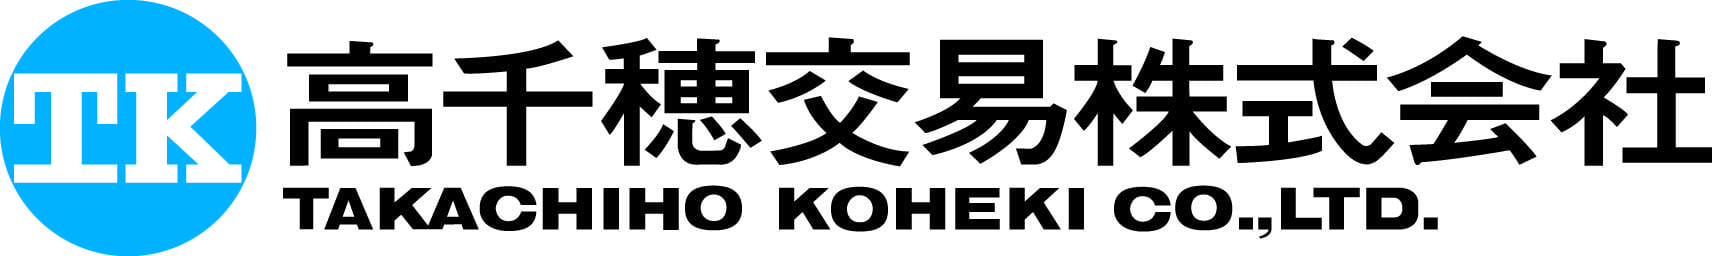 Takachiho Koheki co., LTD.